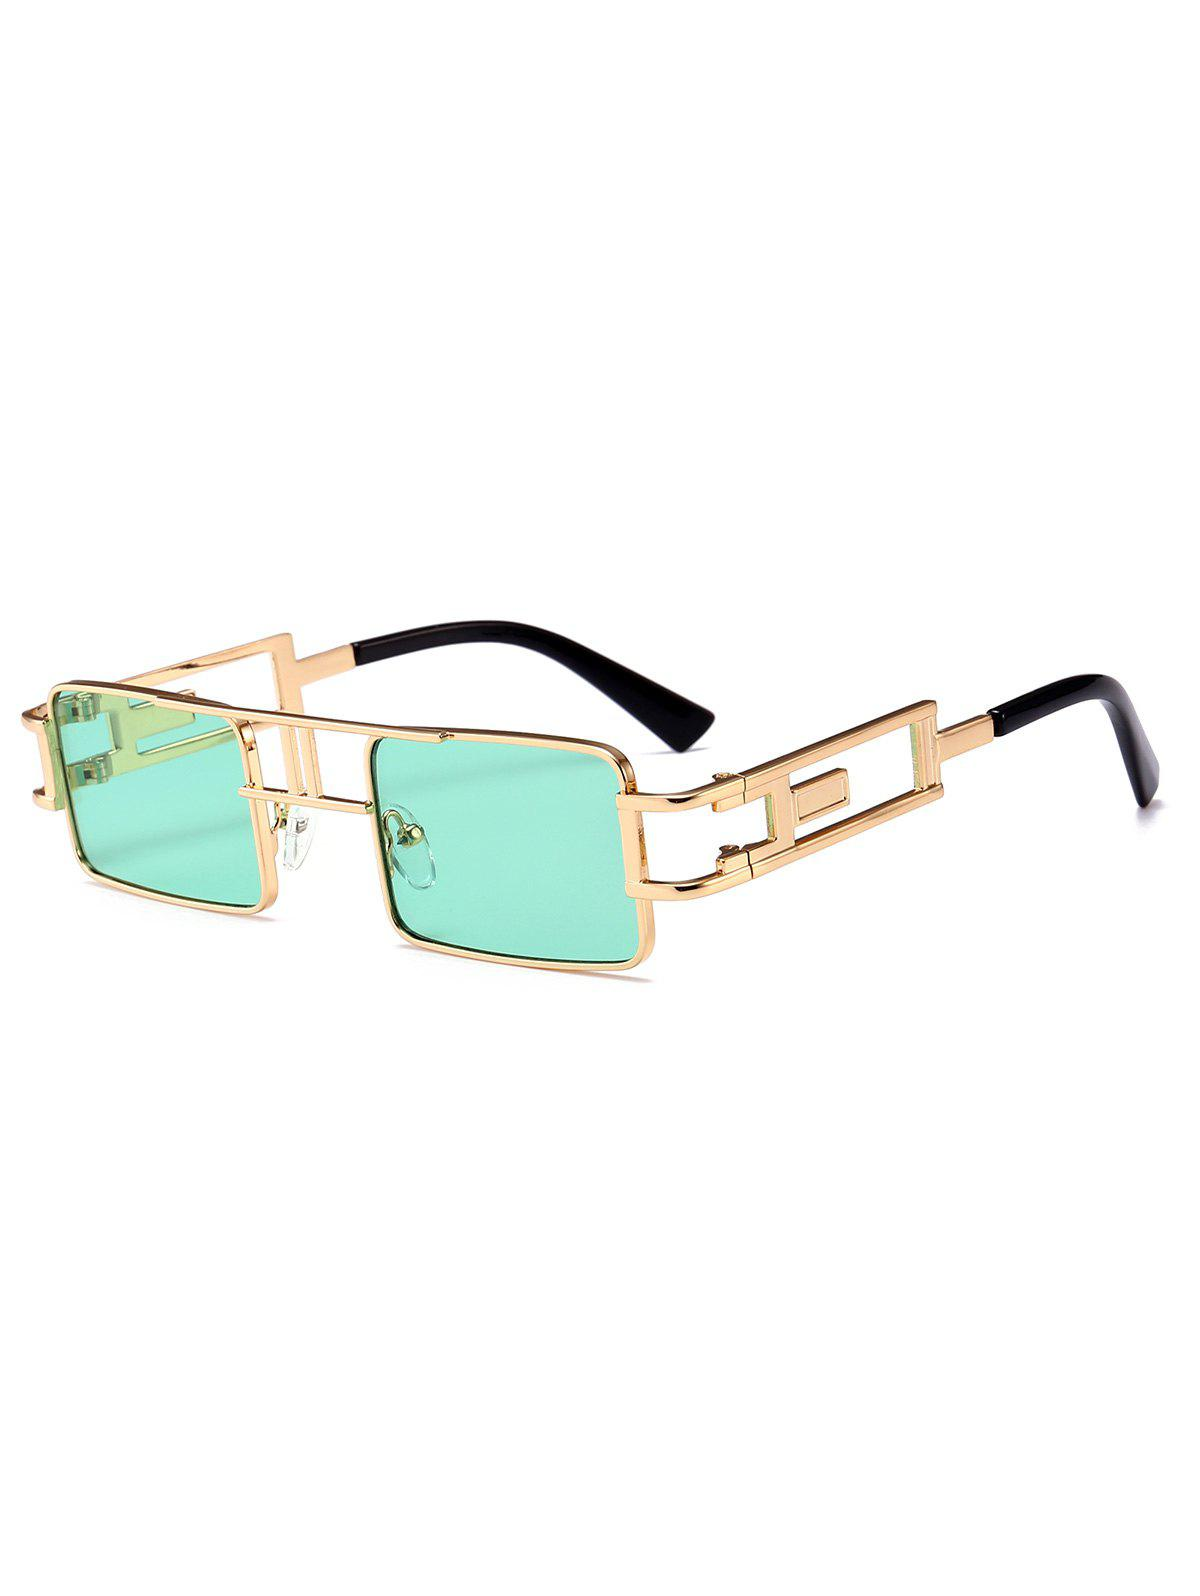 Shop Hollow Leg Punk Rectangle Sunglasses